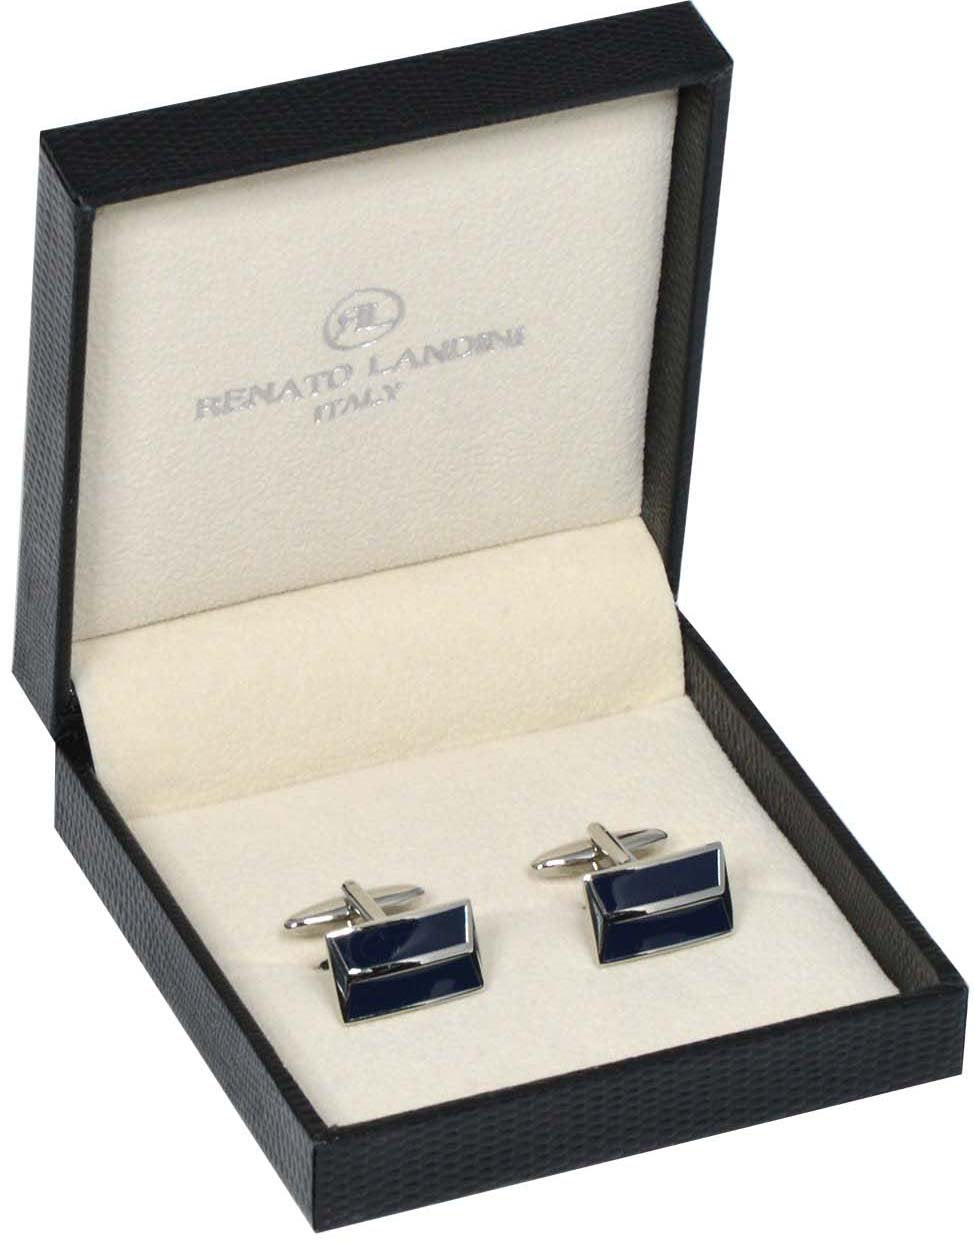 RENATO LANDINI Navy Blue & Chrome Cufflinks/ Connection 31